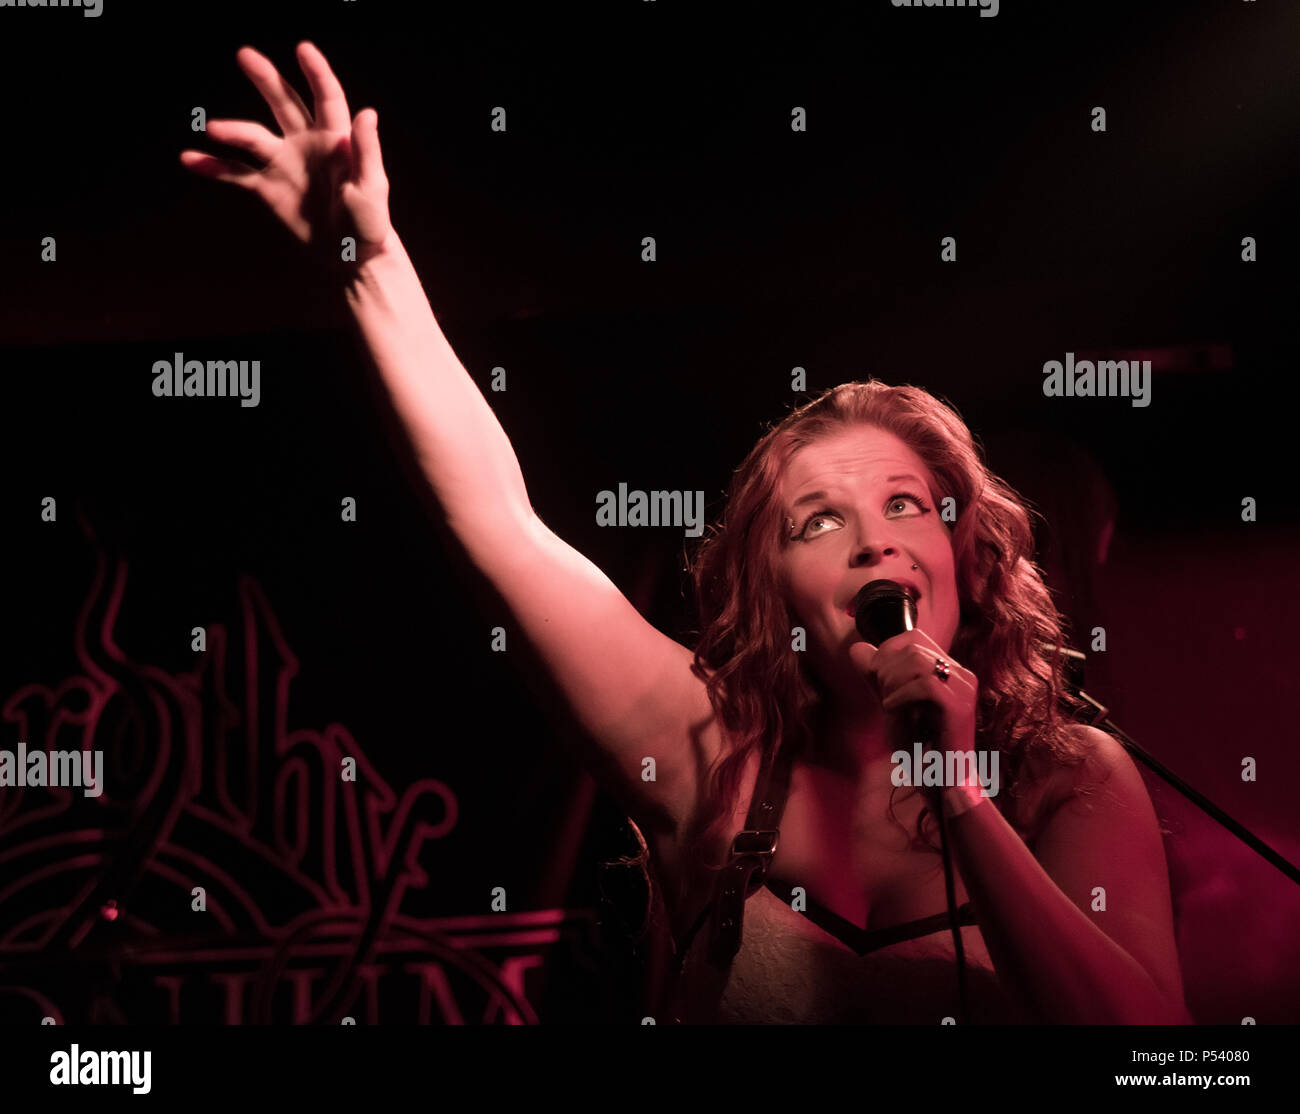 Suvi Uura, Lead singer of the Finnish metal band Dorothy Polonium, on stage with hand up in the air with eyes looking up - Stock Image